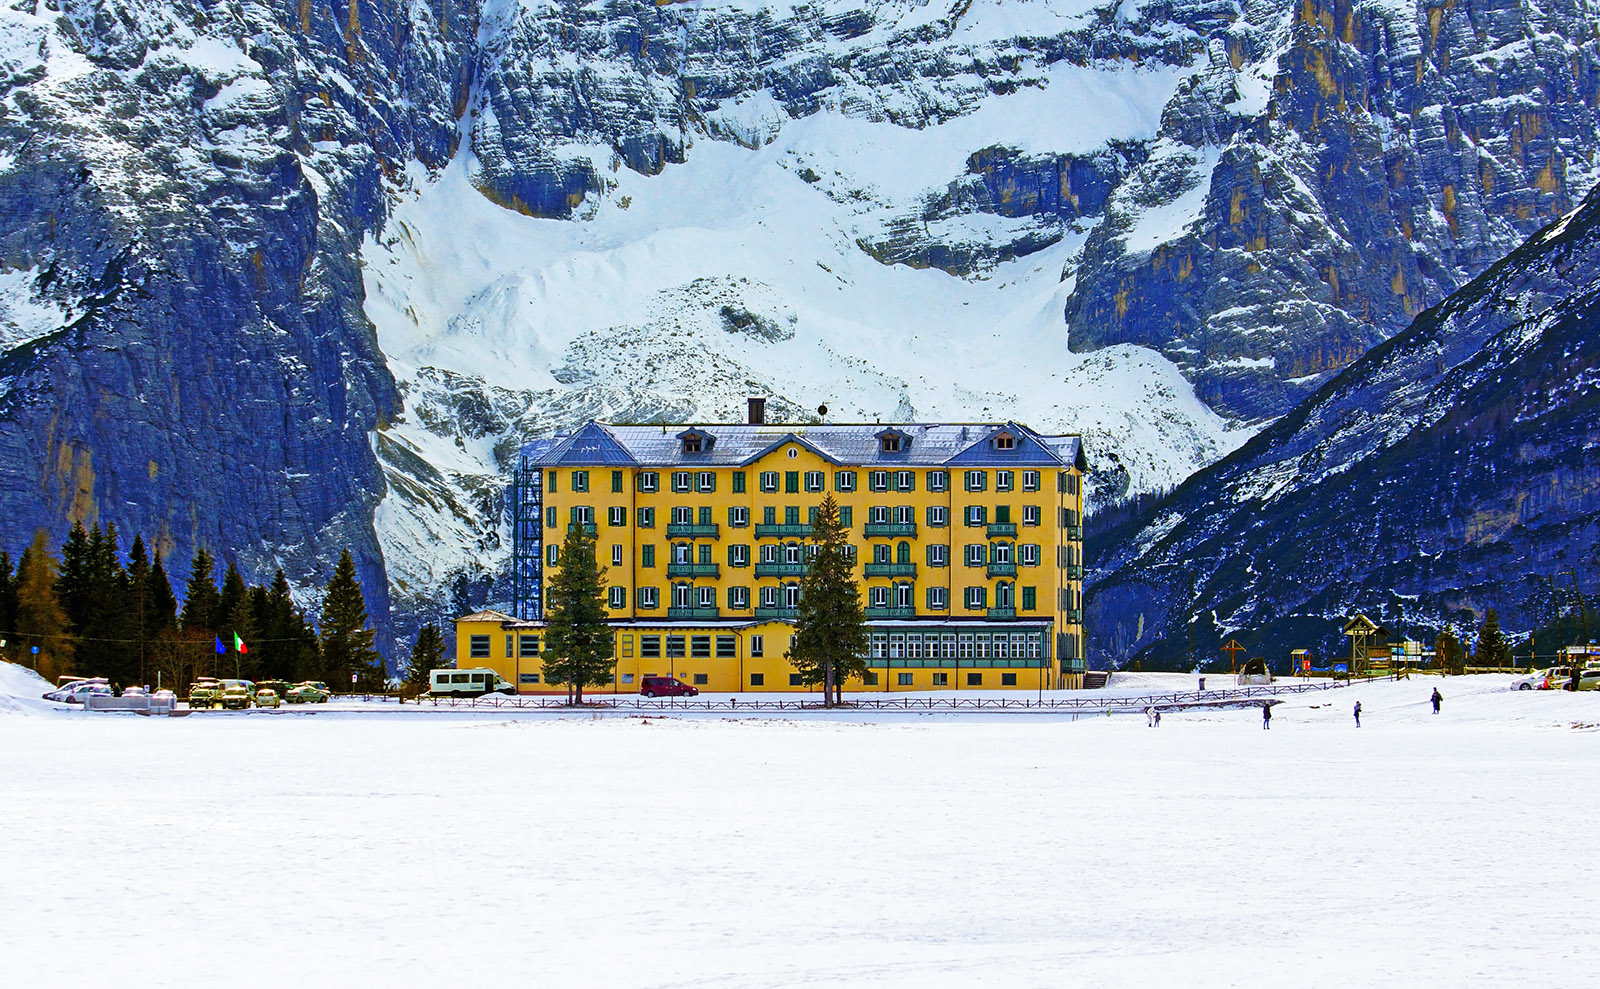 large yellow hotel on a snowy mountain